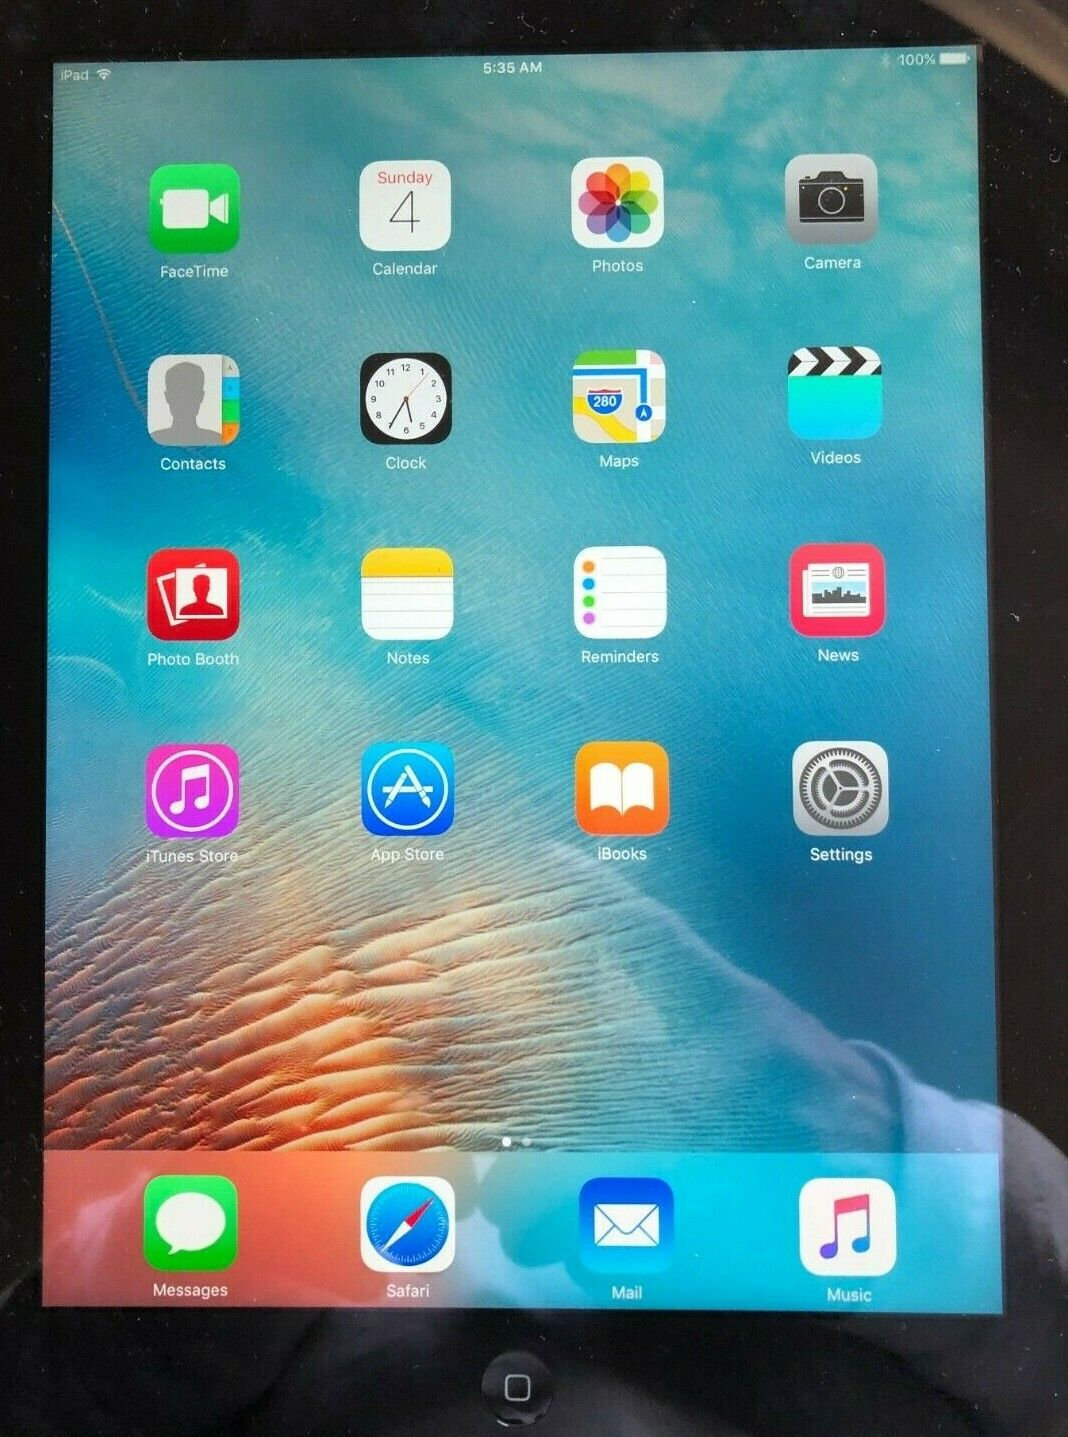 Apple IPad 2 2nd Gen 16GB Wi-Fi 9.7in Black Very Good Condition MC960LL/A A1395 - $29.99